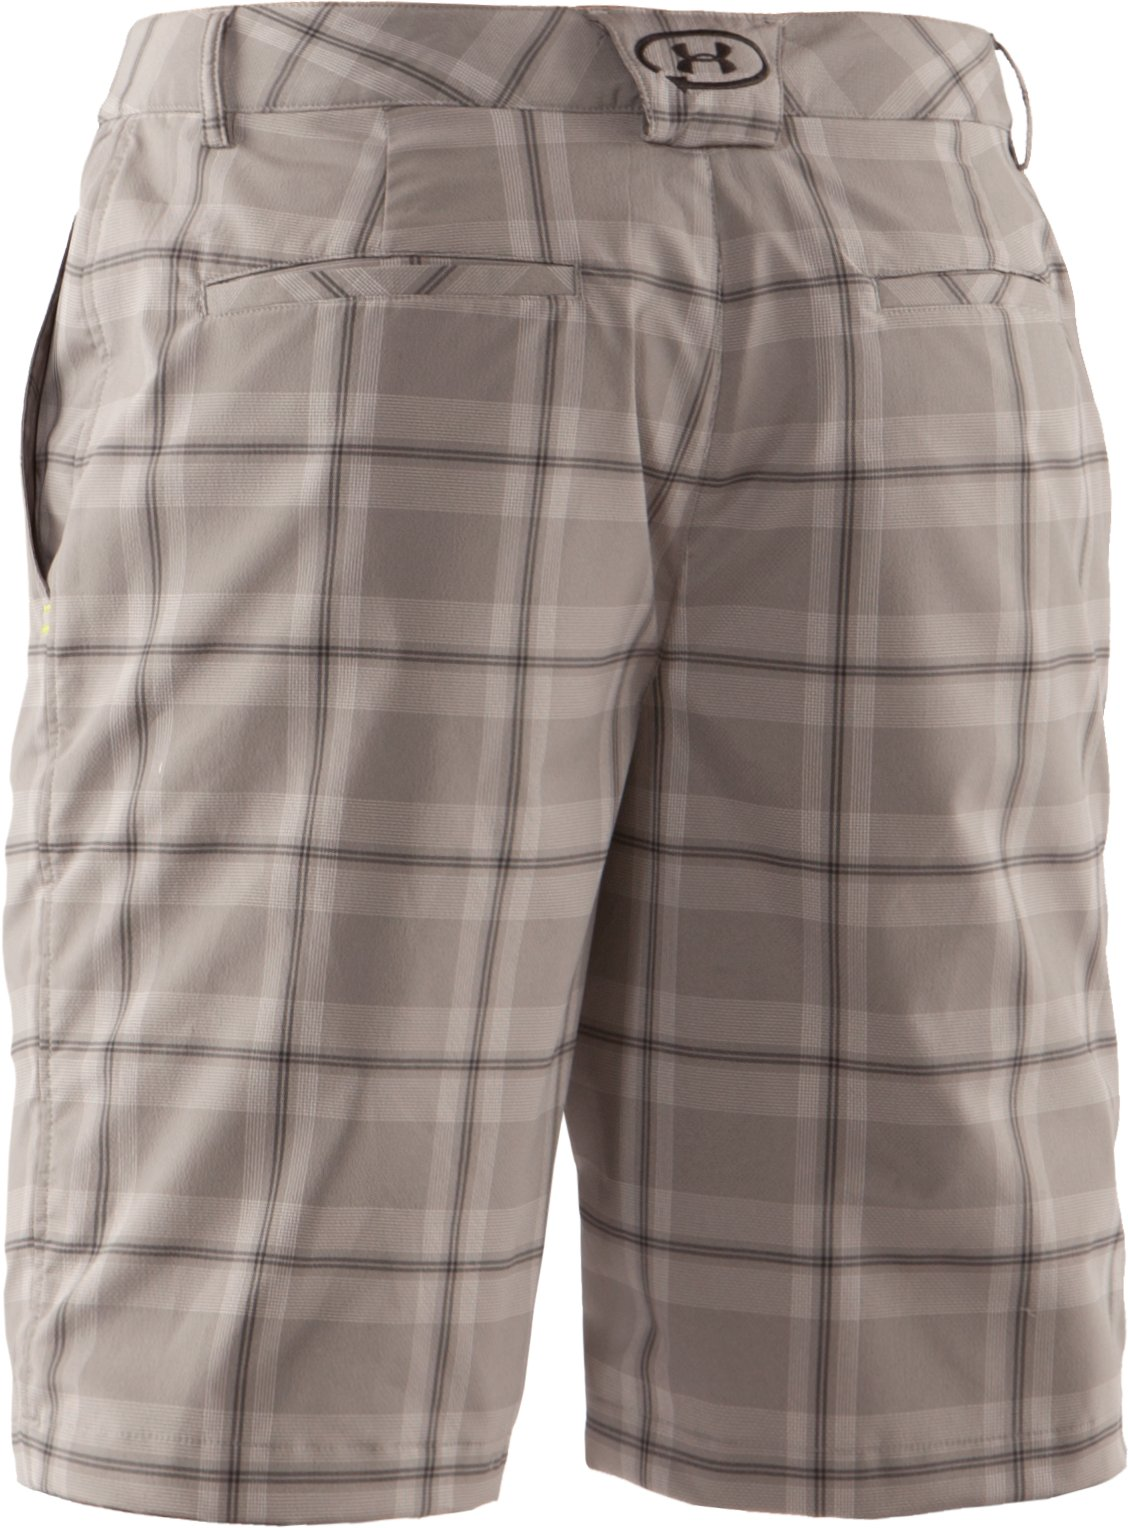 Men's UA Catalyst Plaid Shorts, Concrete